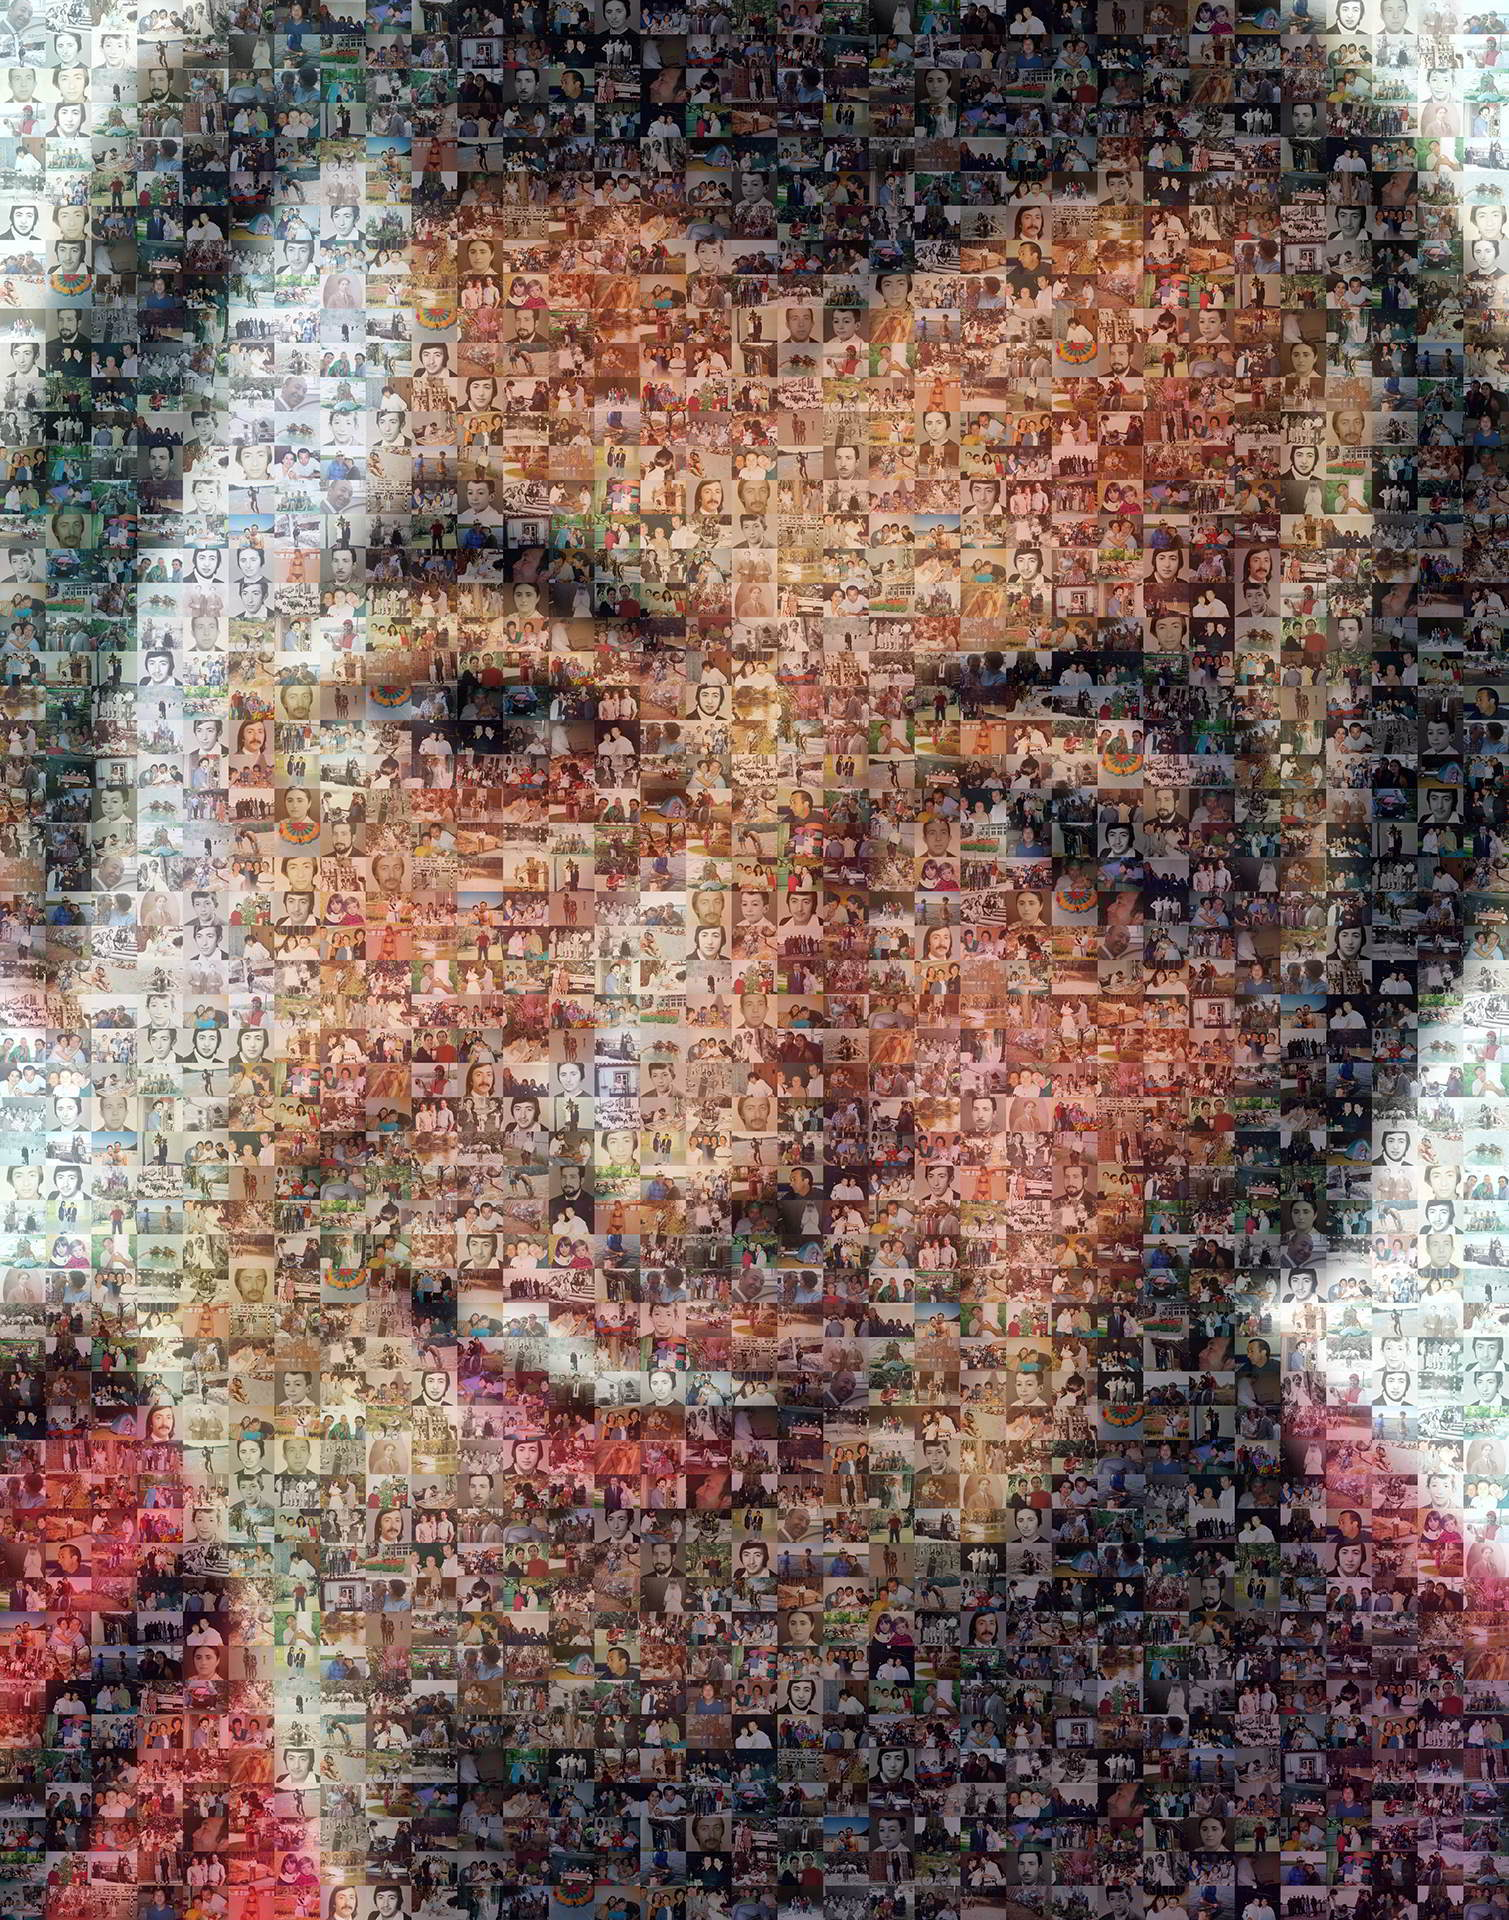 photo mosaic created using only 195 photos from past to present